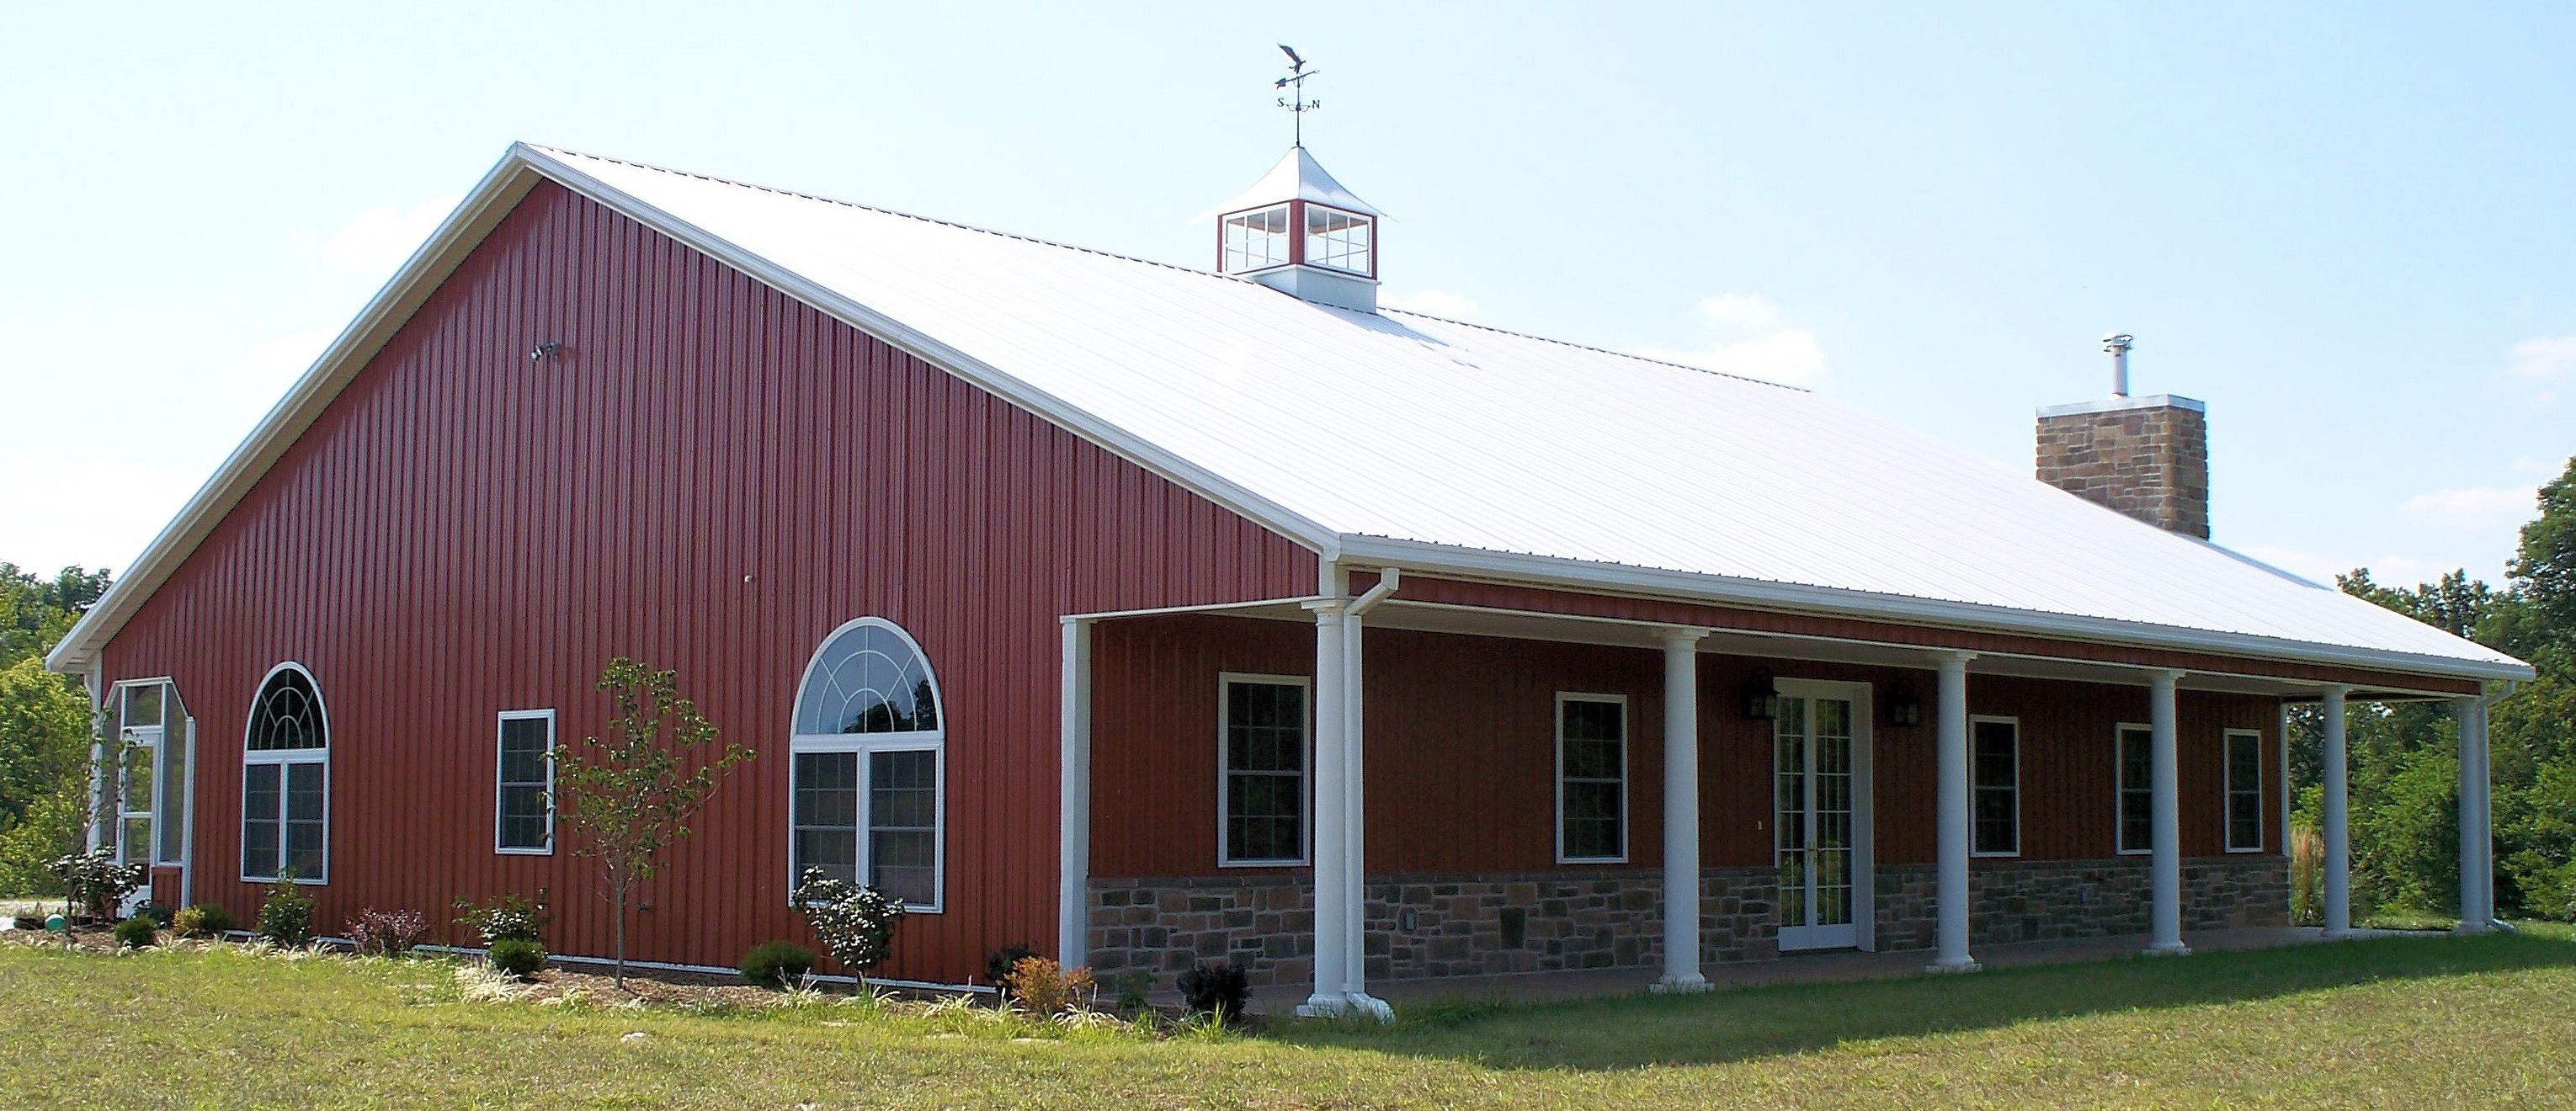 Metal building house pole barn homes pinterest for Houses with barns